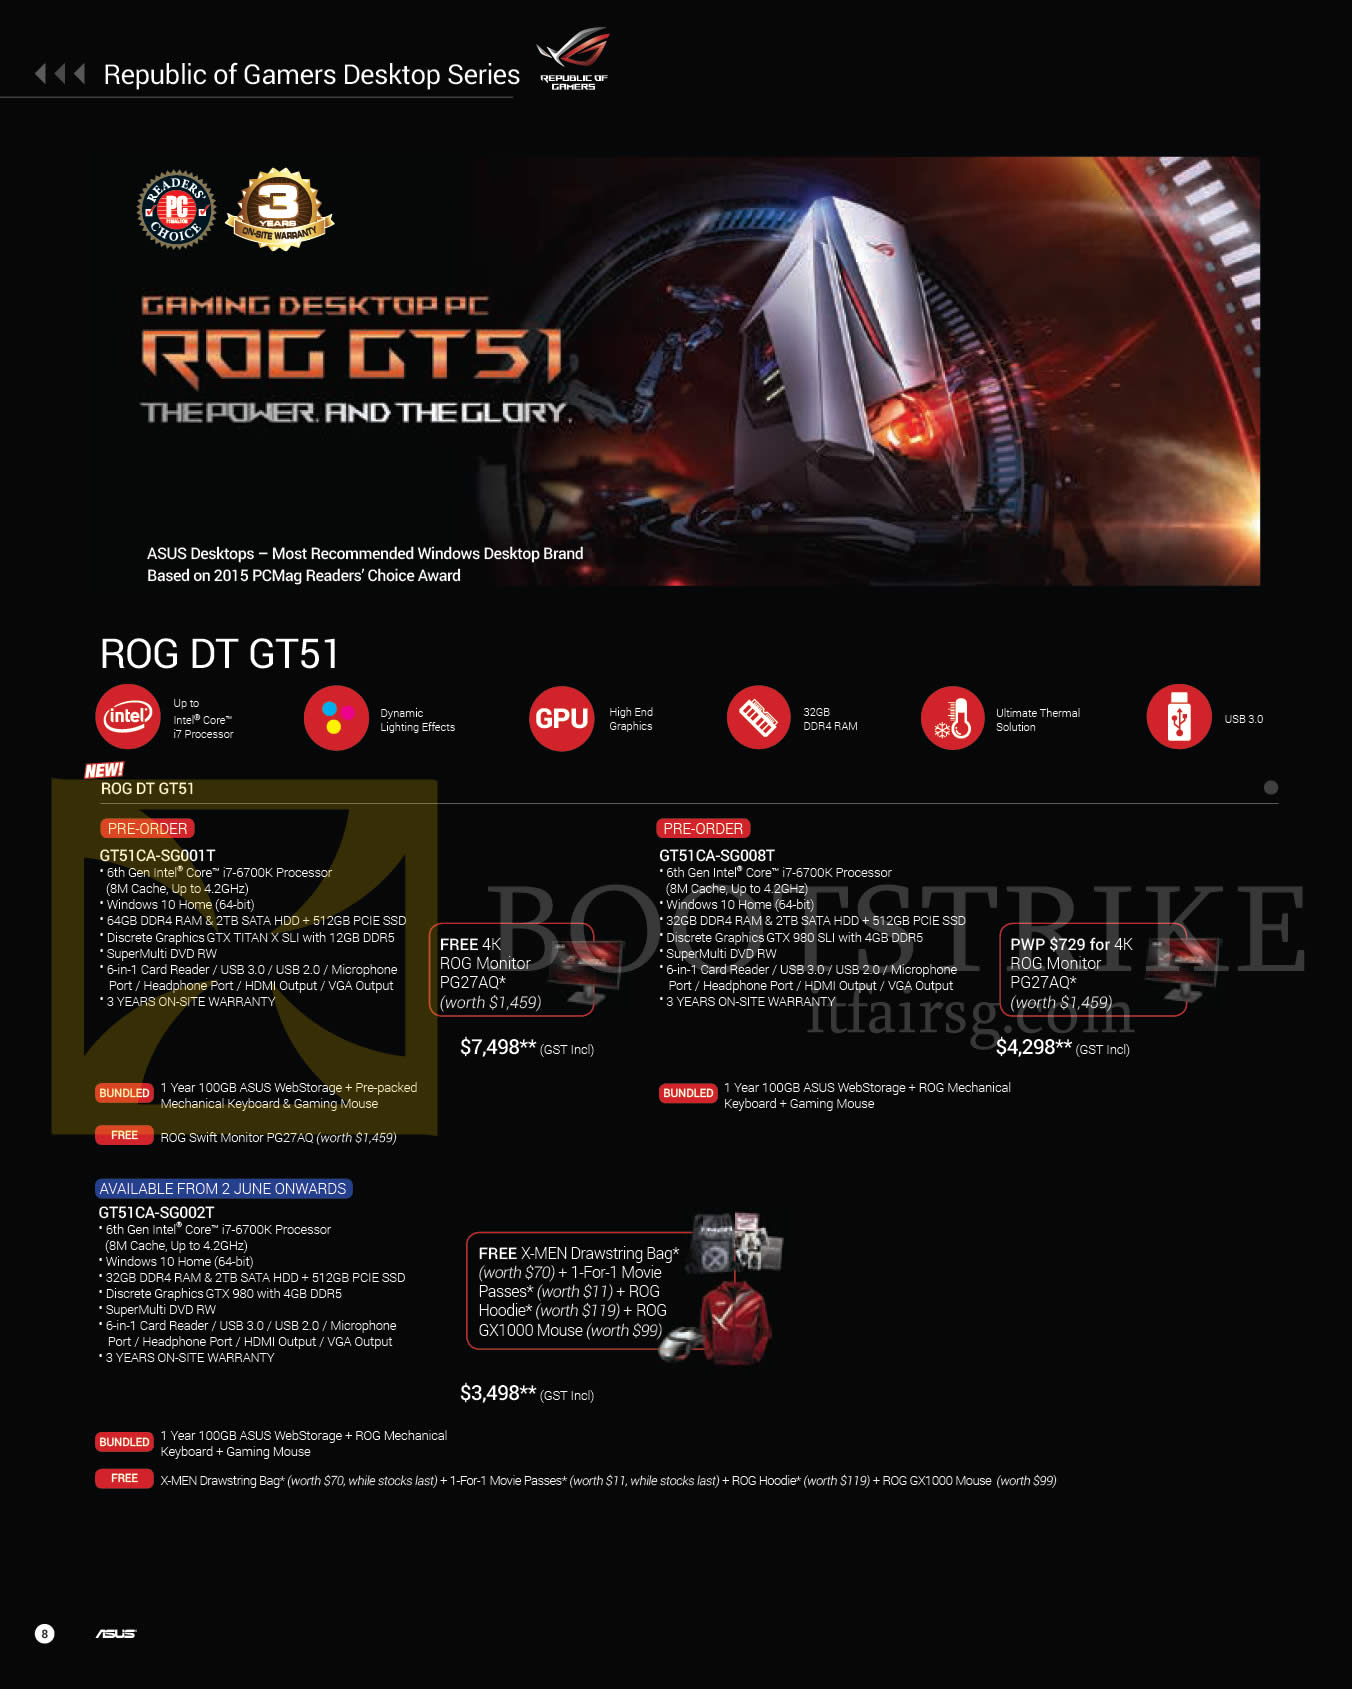 PC SHOW 2016 price list image brochure of ASUS Notebooks ROG DT GT51 GT51CA-SG001T, GT51CA-SG008T, GT51CA-SG002T